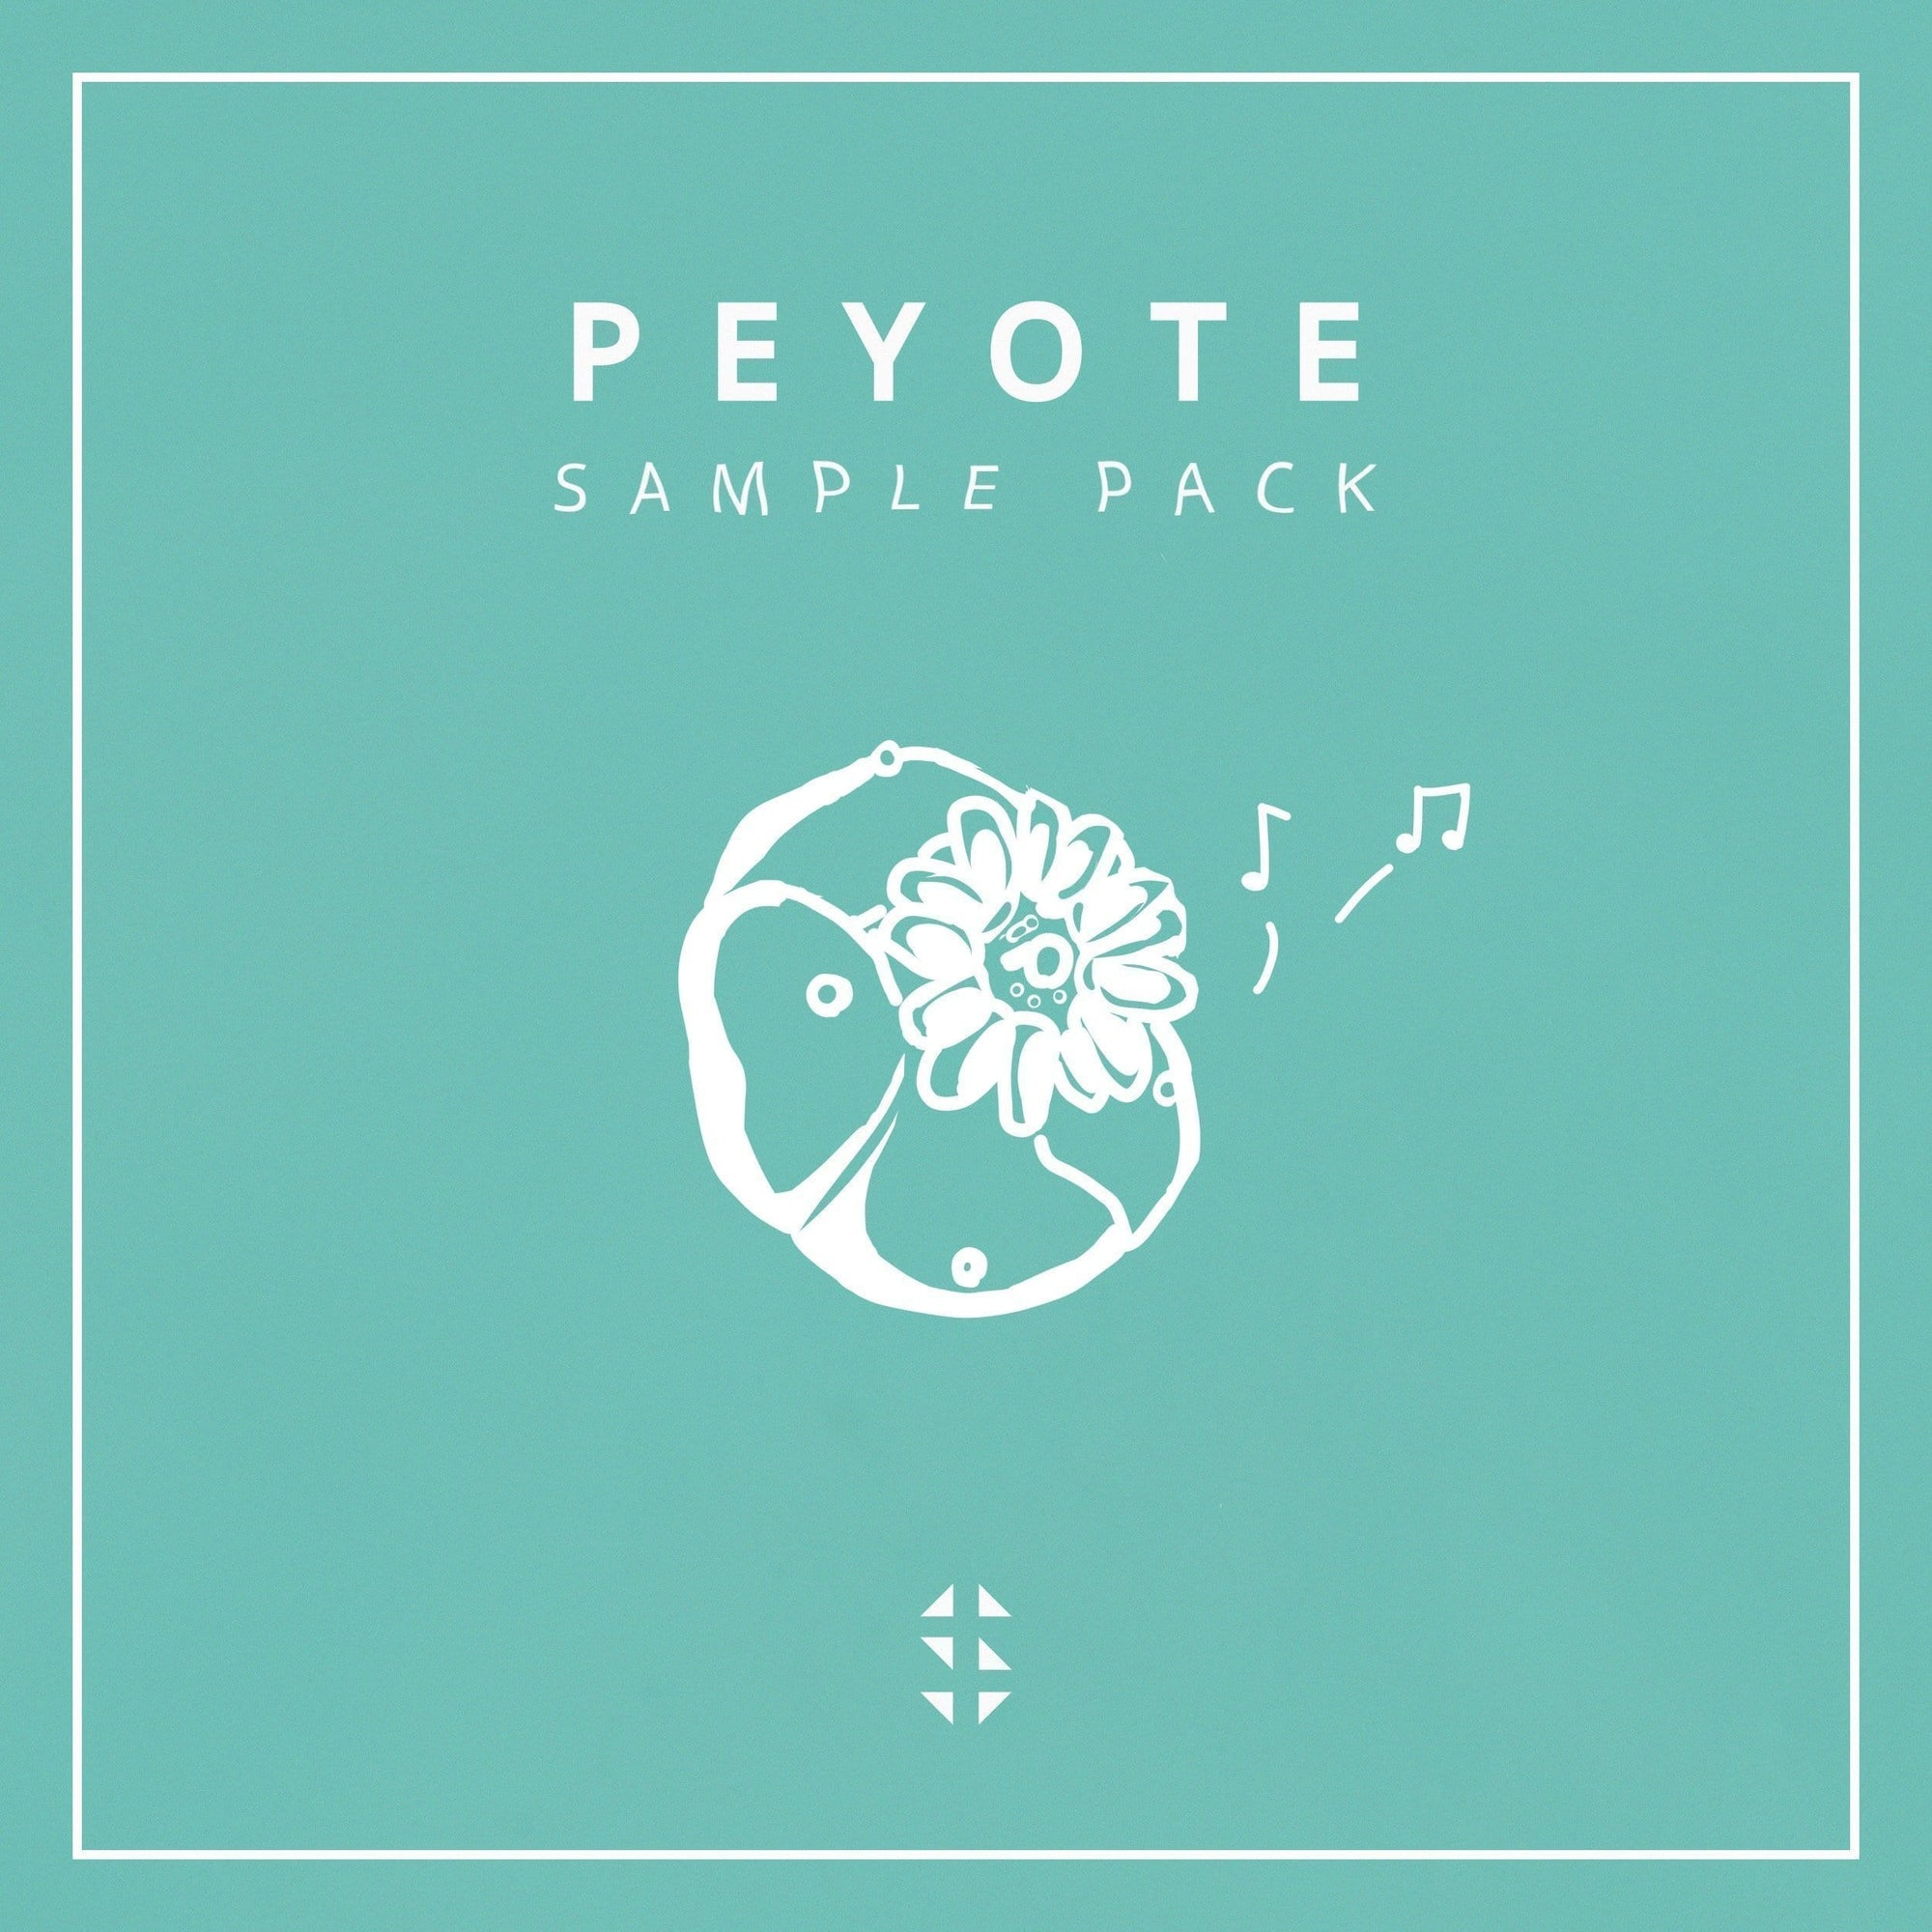 Ambient Sounds Sample Pack and Presets - Peyote Sample Pack Samplified